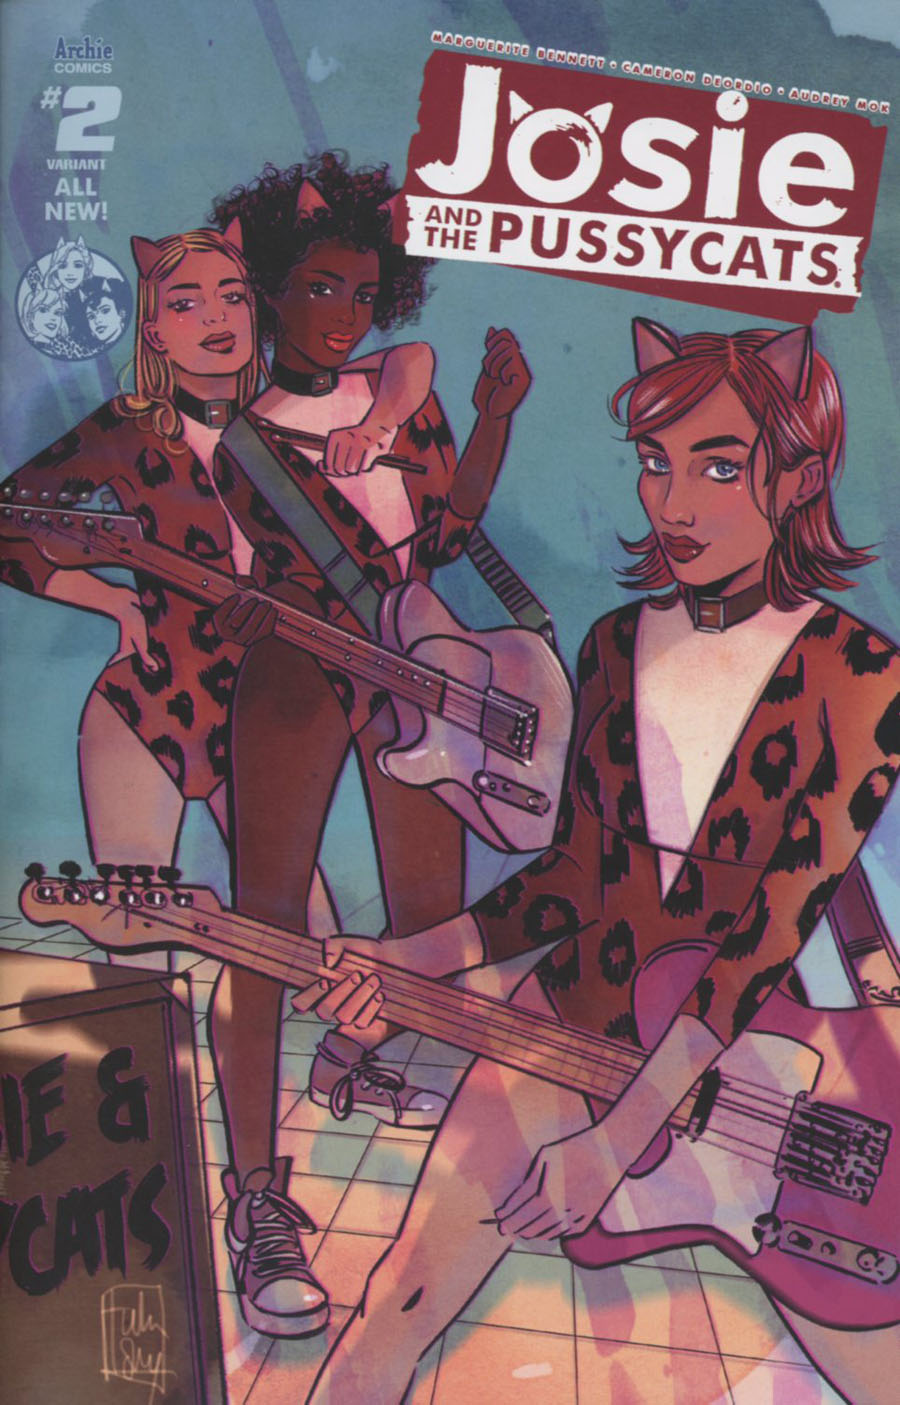 Josie And The Pussycats Vol 2 #2 Cover C Variant Tula Lotay Cover